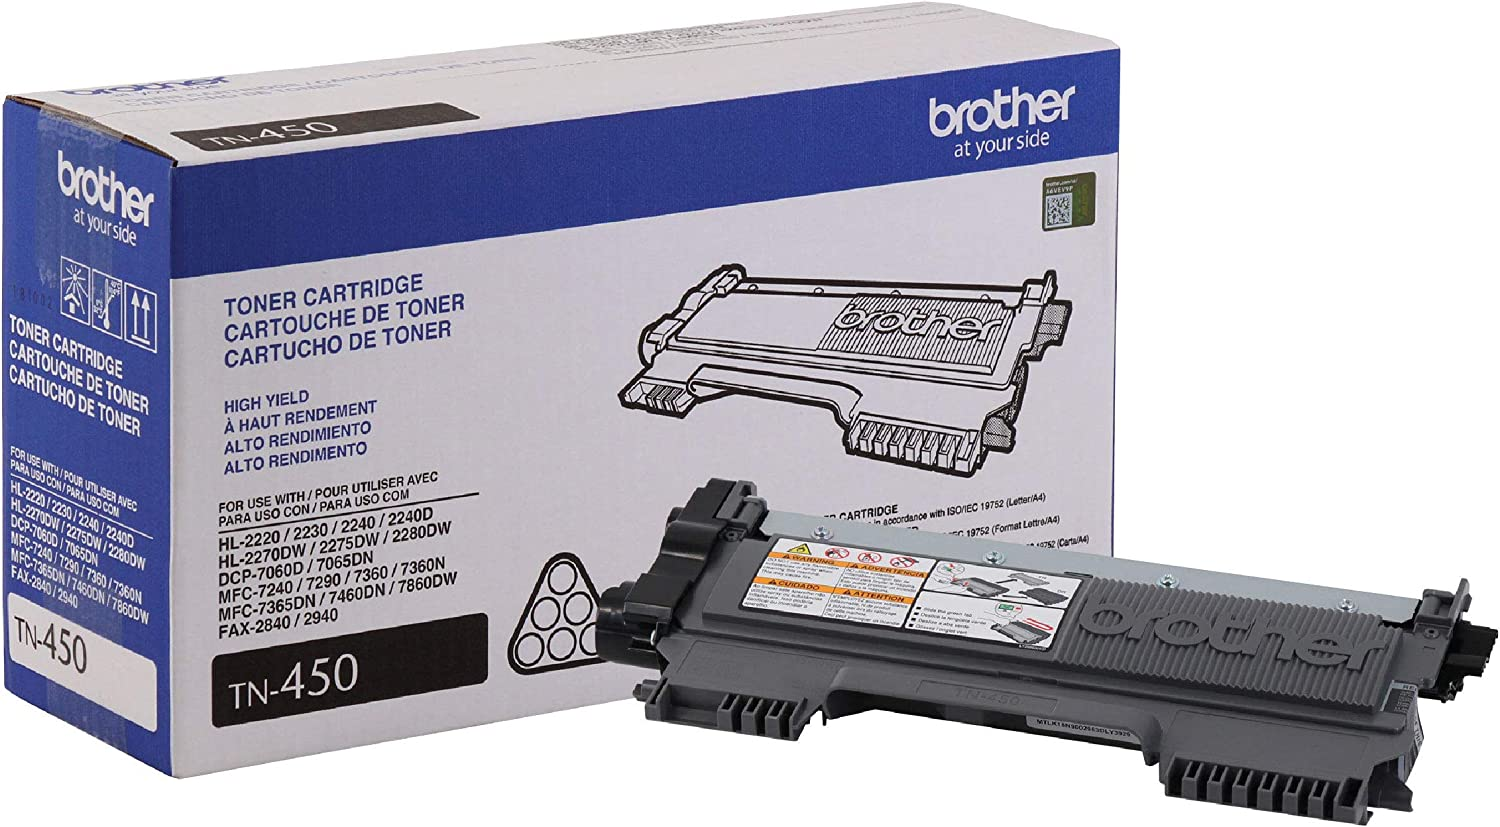 Brother Genuine High Yield Toner Cartridge, TN450, Replacement Black Toner, Page Yield Up To 2,600 Pages: Office Products